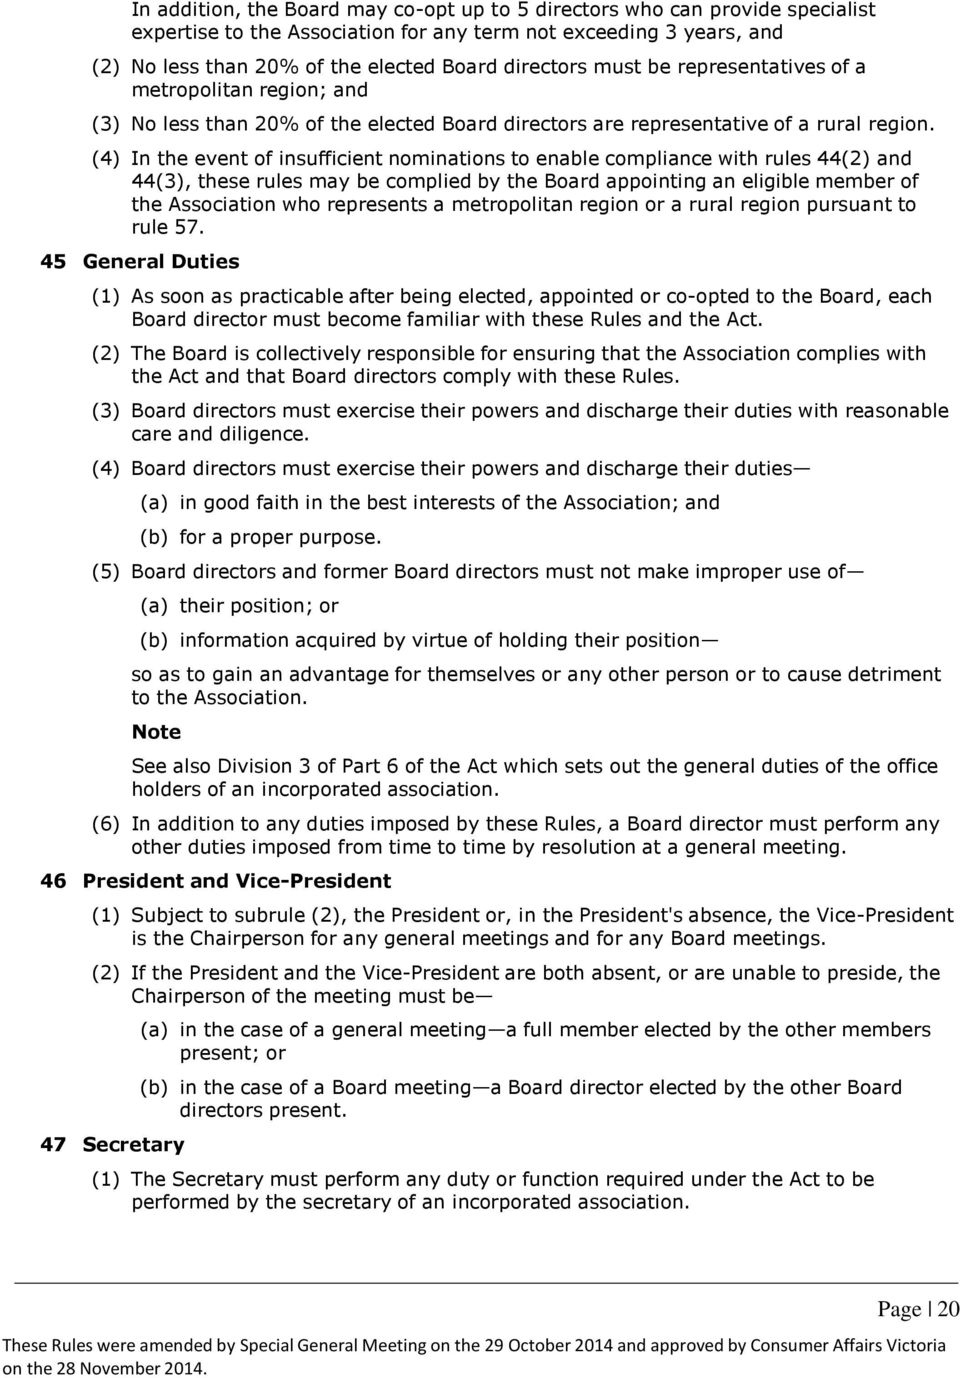 (4) In the event of insufficient nominations to enable compliance with rules 44(2) and 44(3), these rules may be complied by the Board appointing an eligible member of the Association who represents